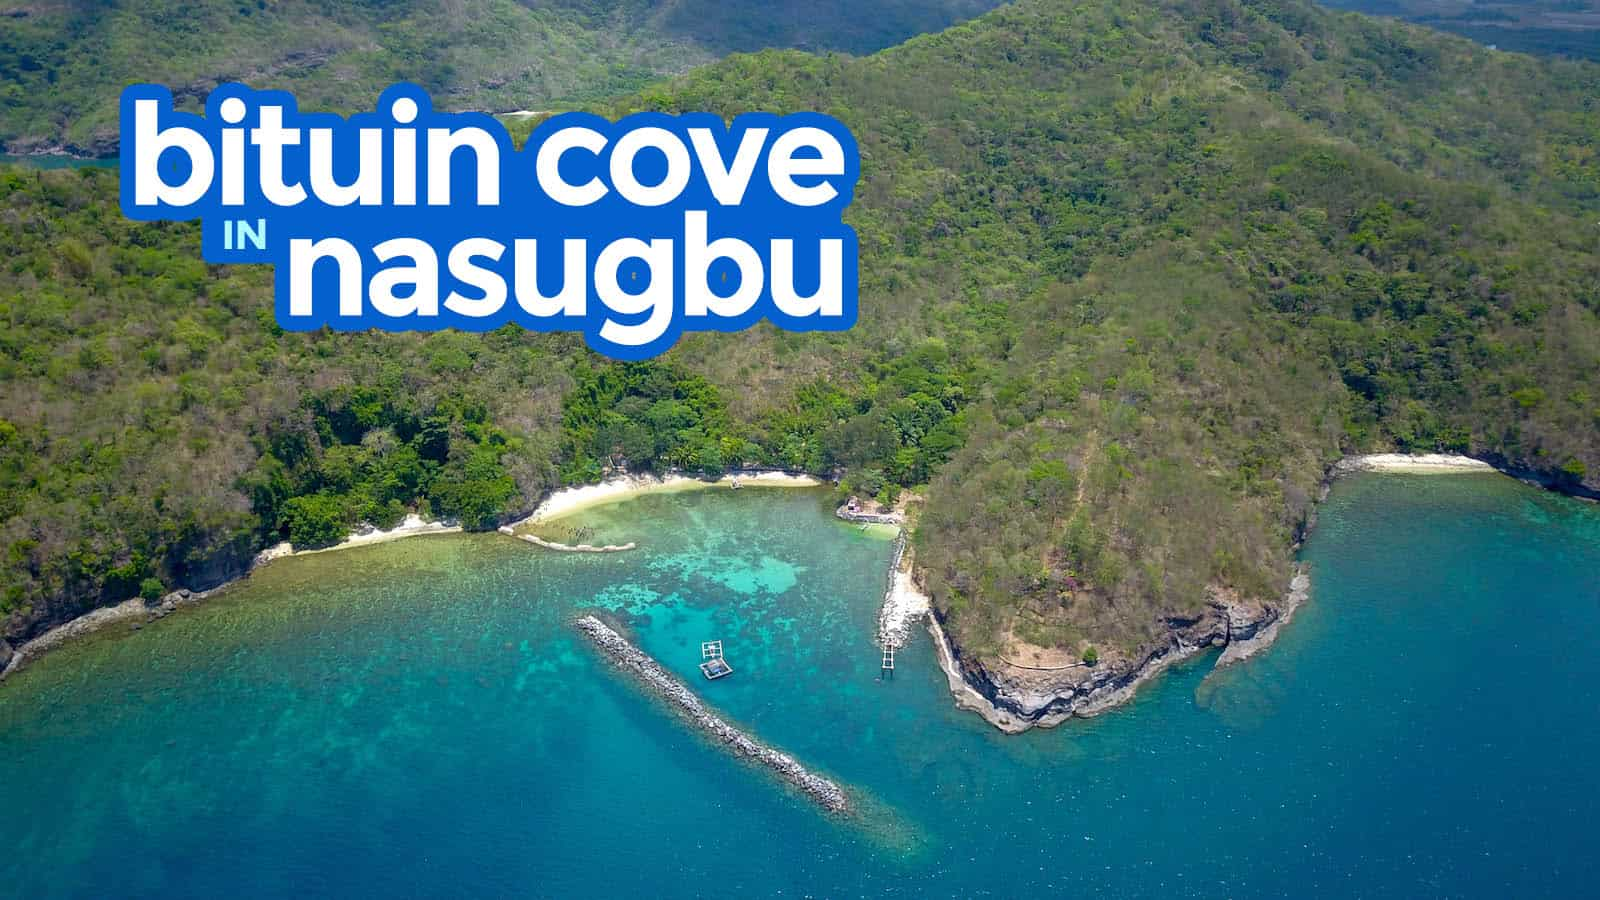 New! BITUIN COVE NASUGBU: Travel Guide & Budget Itineraries